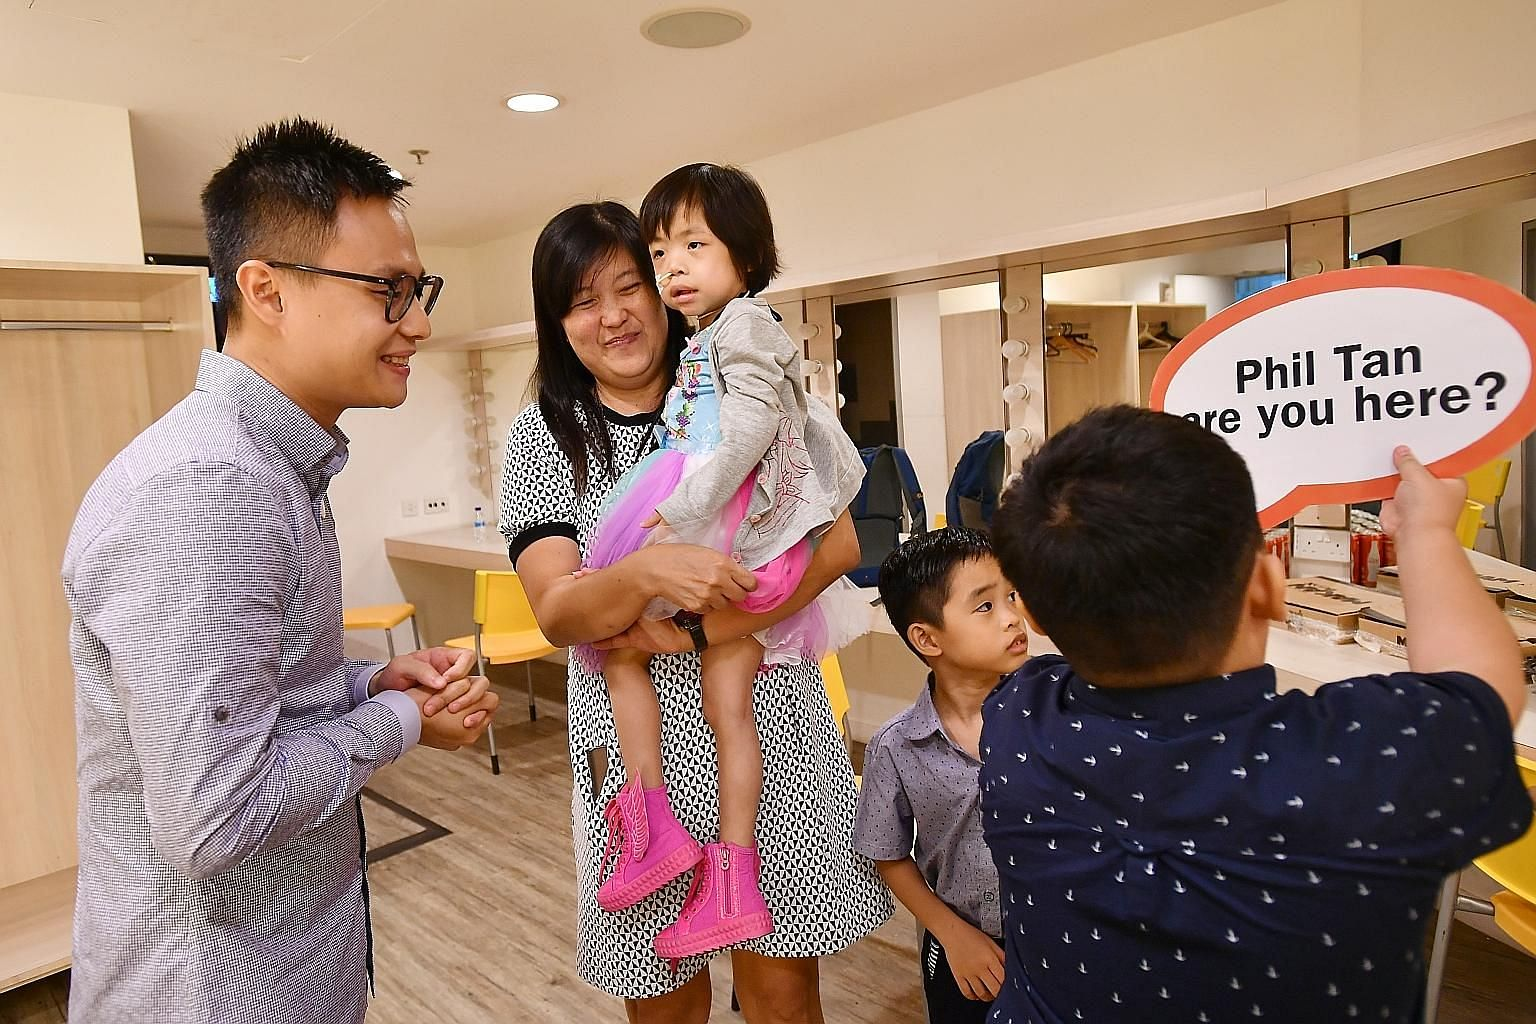 Mr Phil Tan met Ryssa and her family - mother Doris Tia, 42, and brothers Kieran (back to camera) and Kaiser - yesterday. The children are eight-year-old triplets, and Mr Tan's bone marrow saved Ryssa's life.